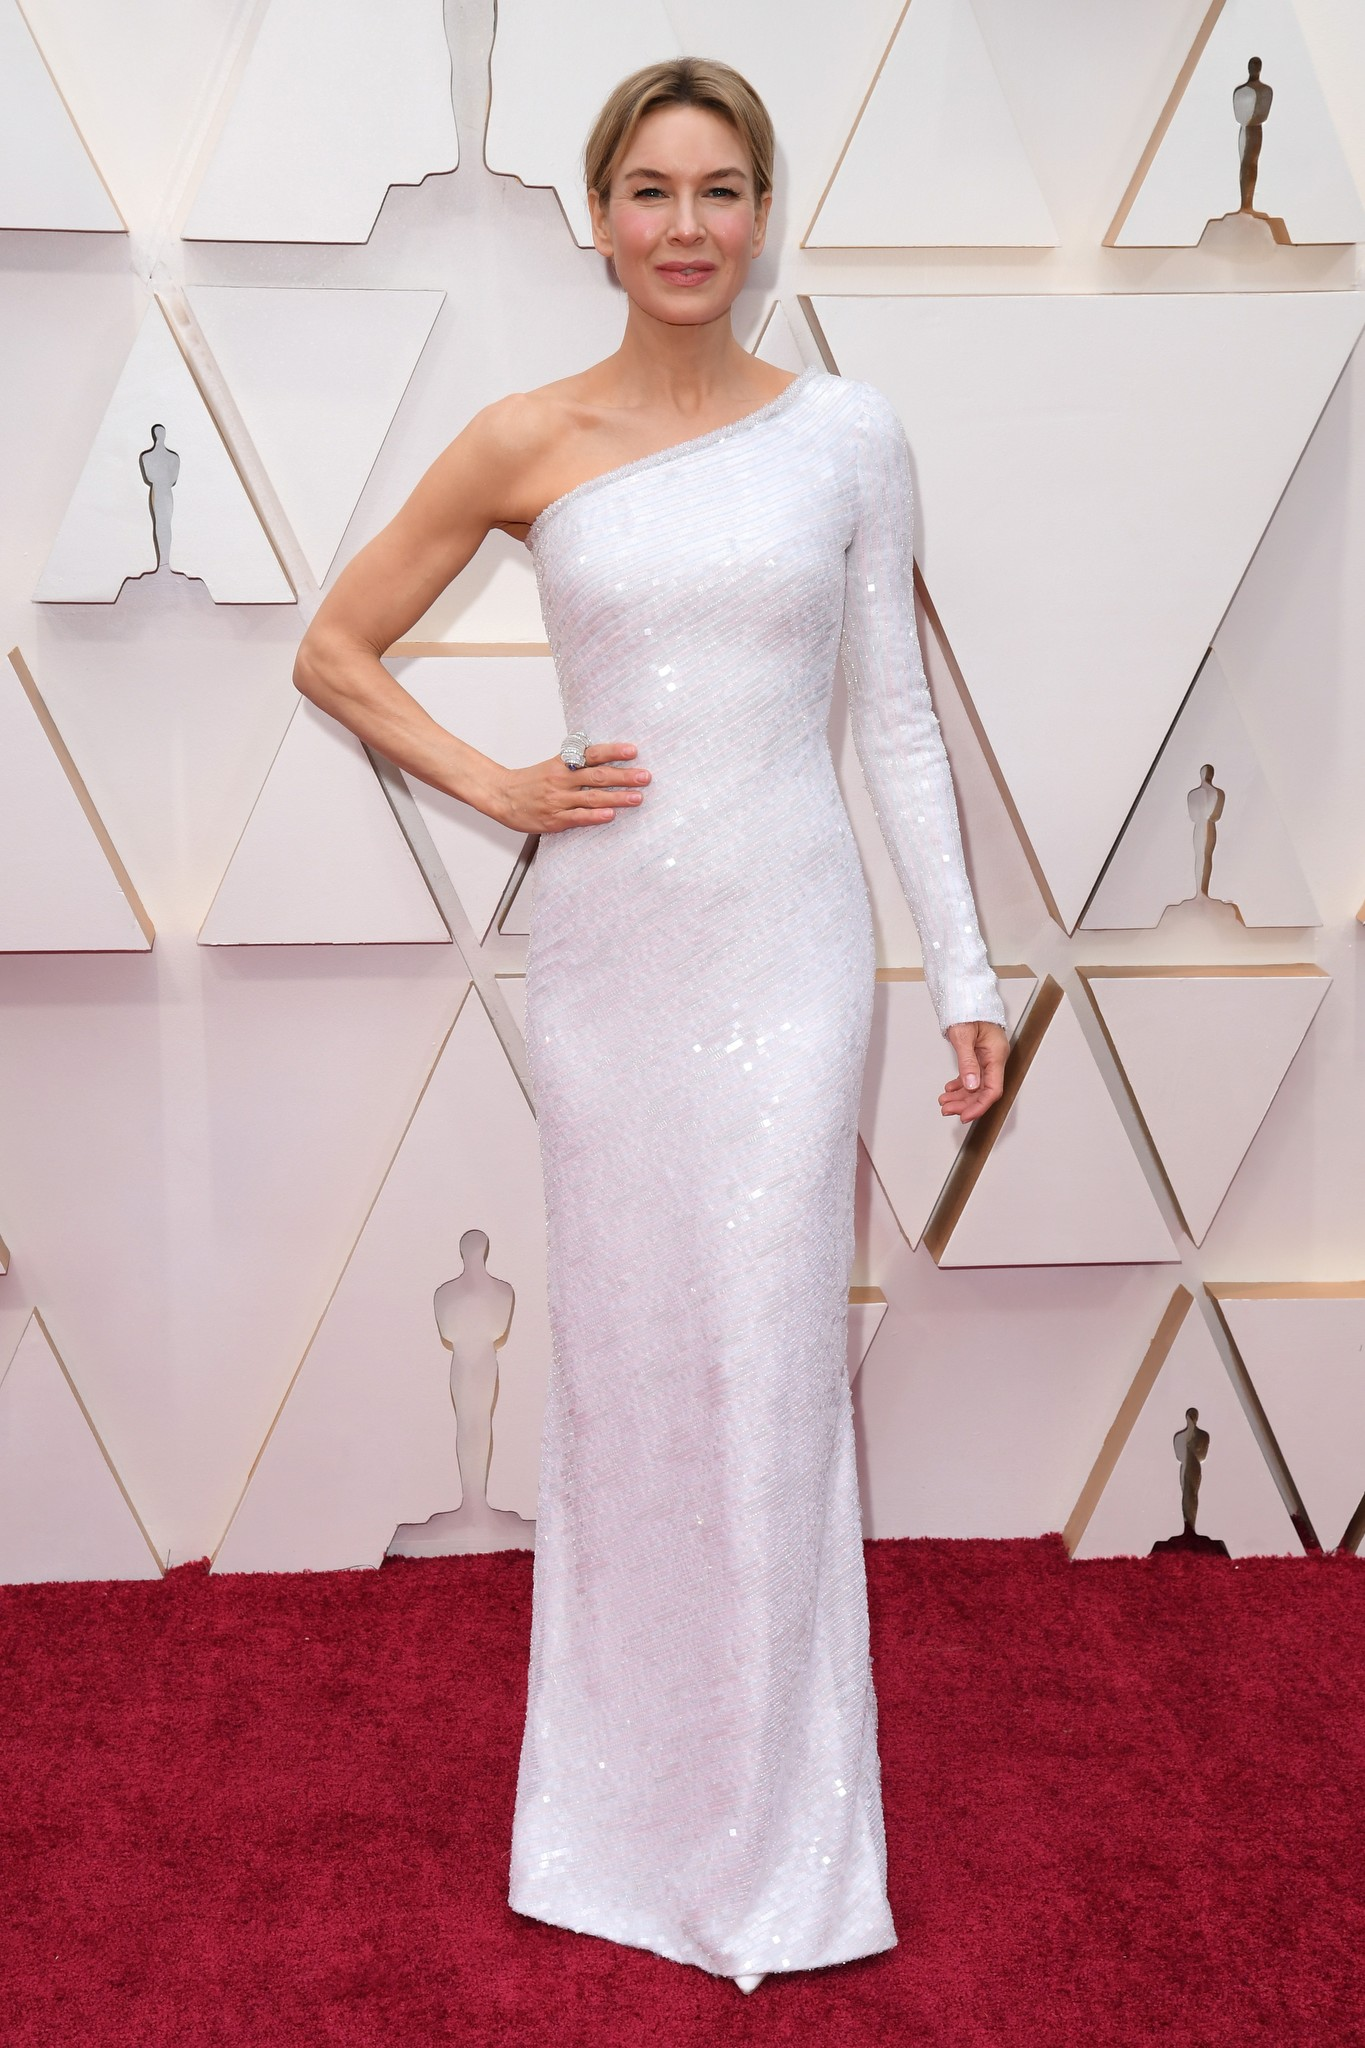 Renee Zellweger at the 2020 Oscars.